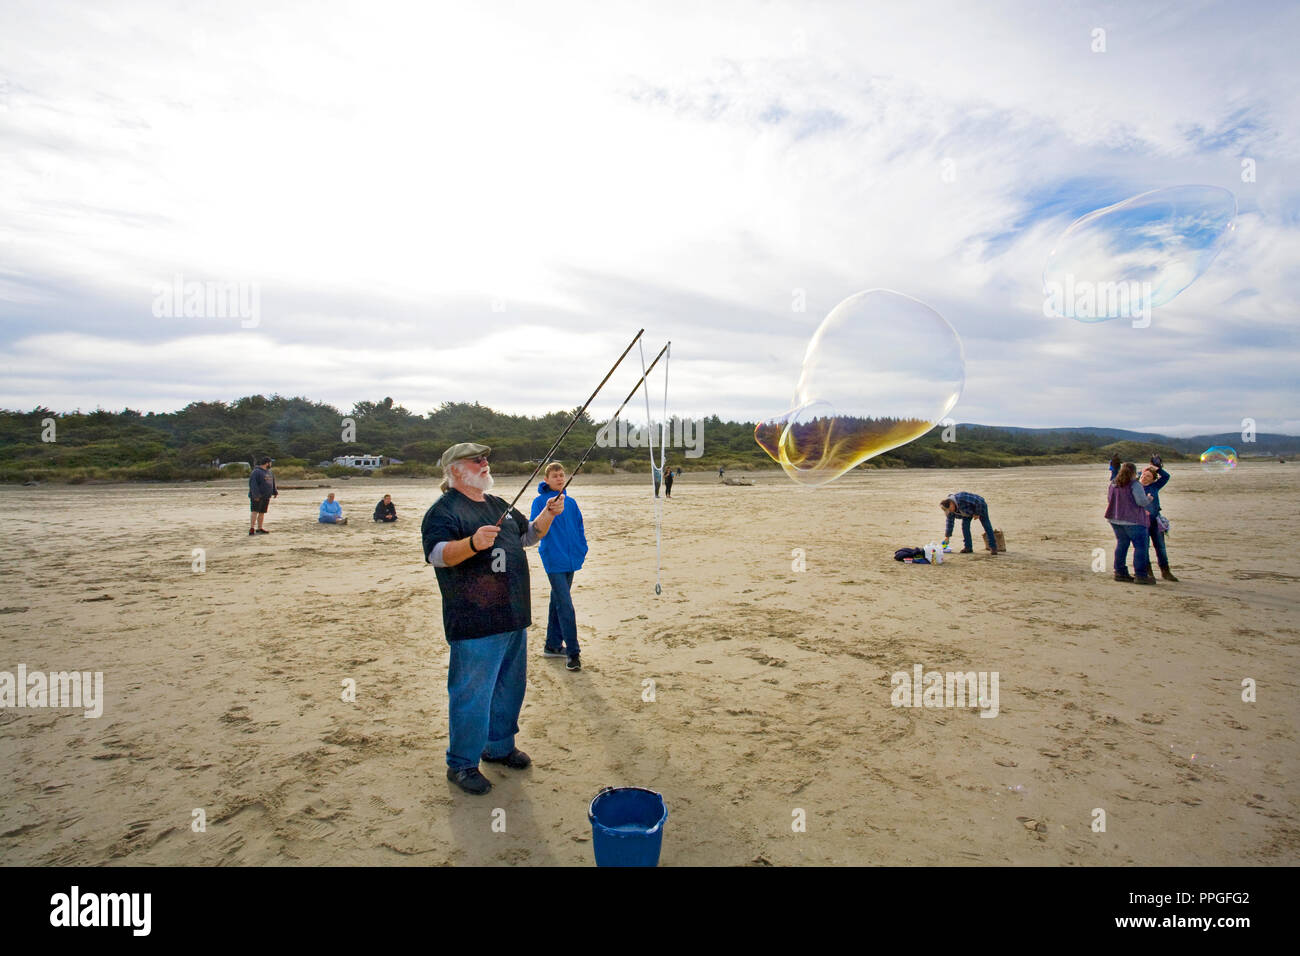 A man using a bubble wand to creat huge soap bubbles at a bubble blowing festival near yachats, Oregon - Stock Image